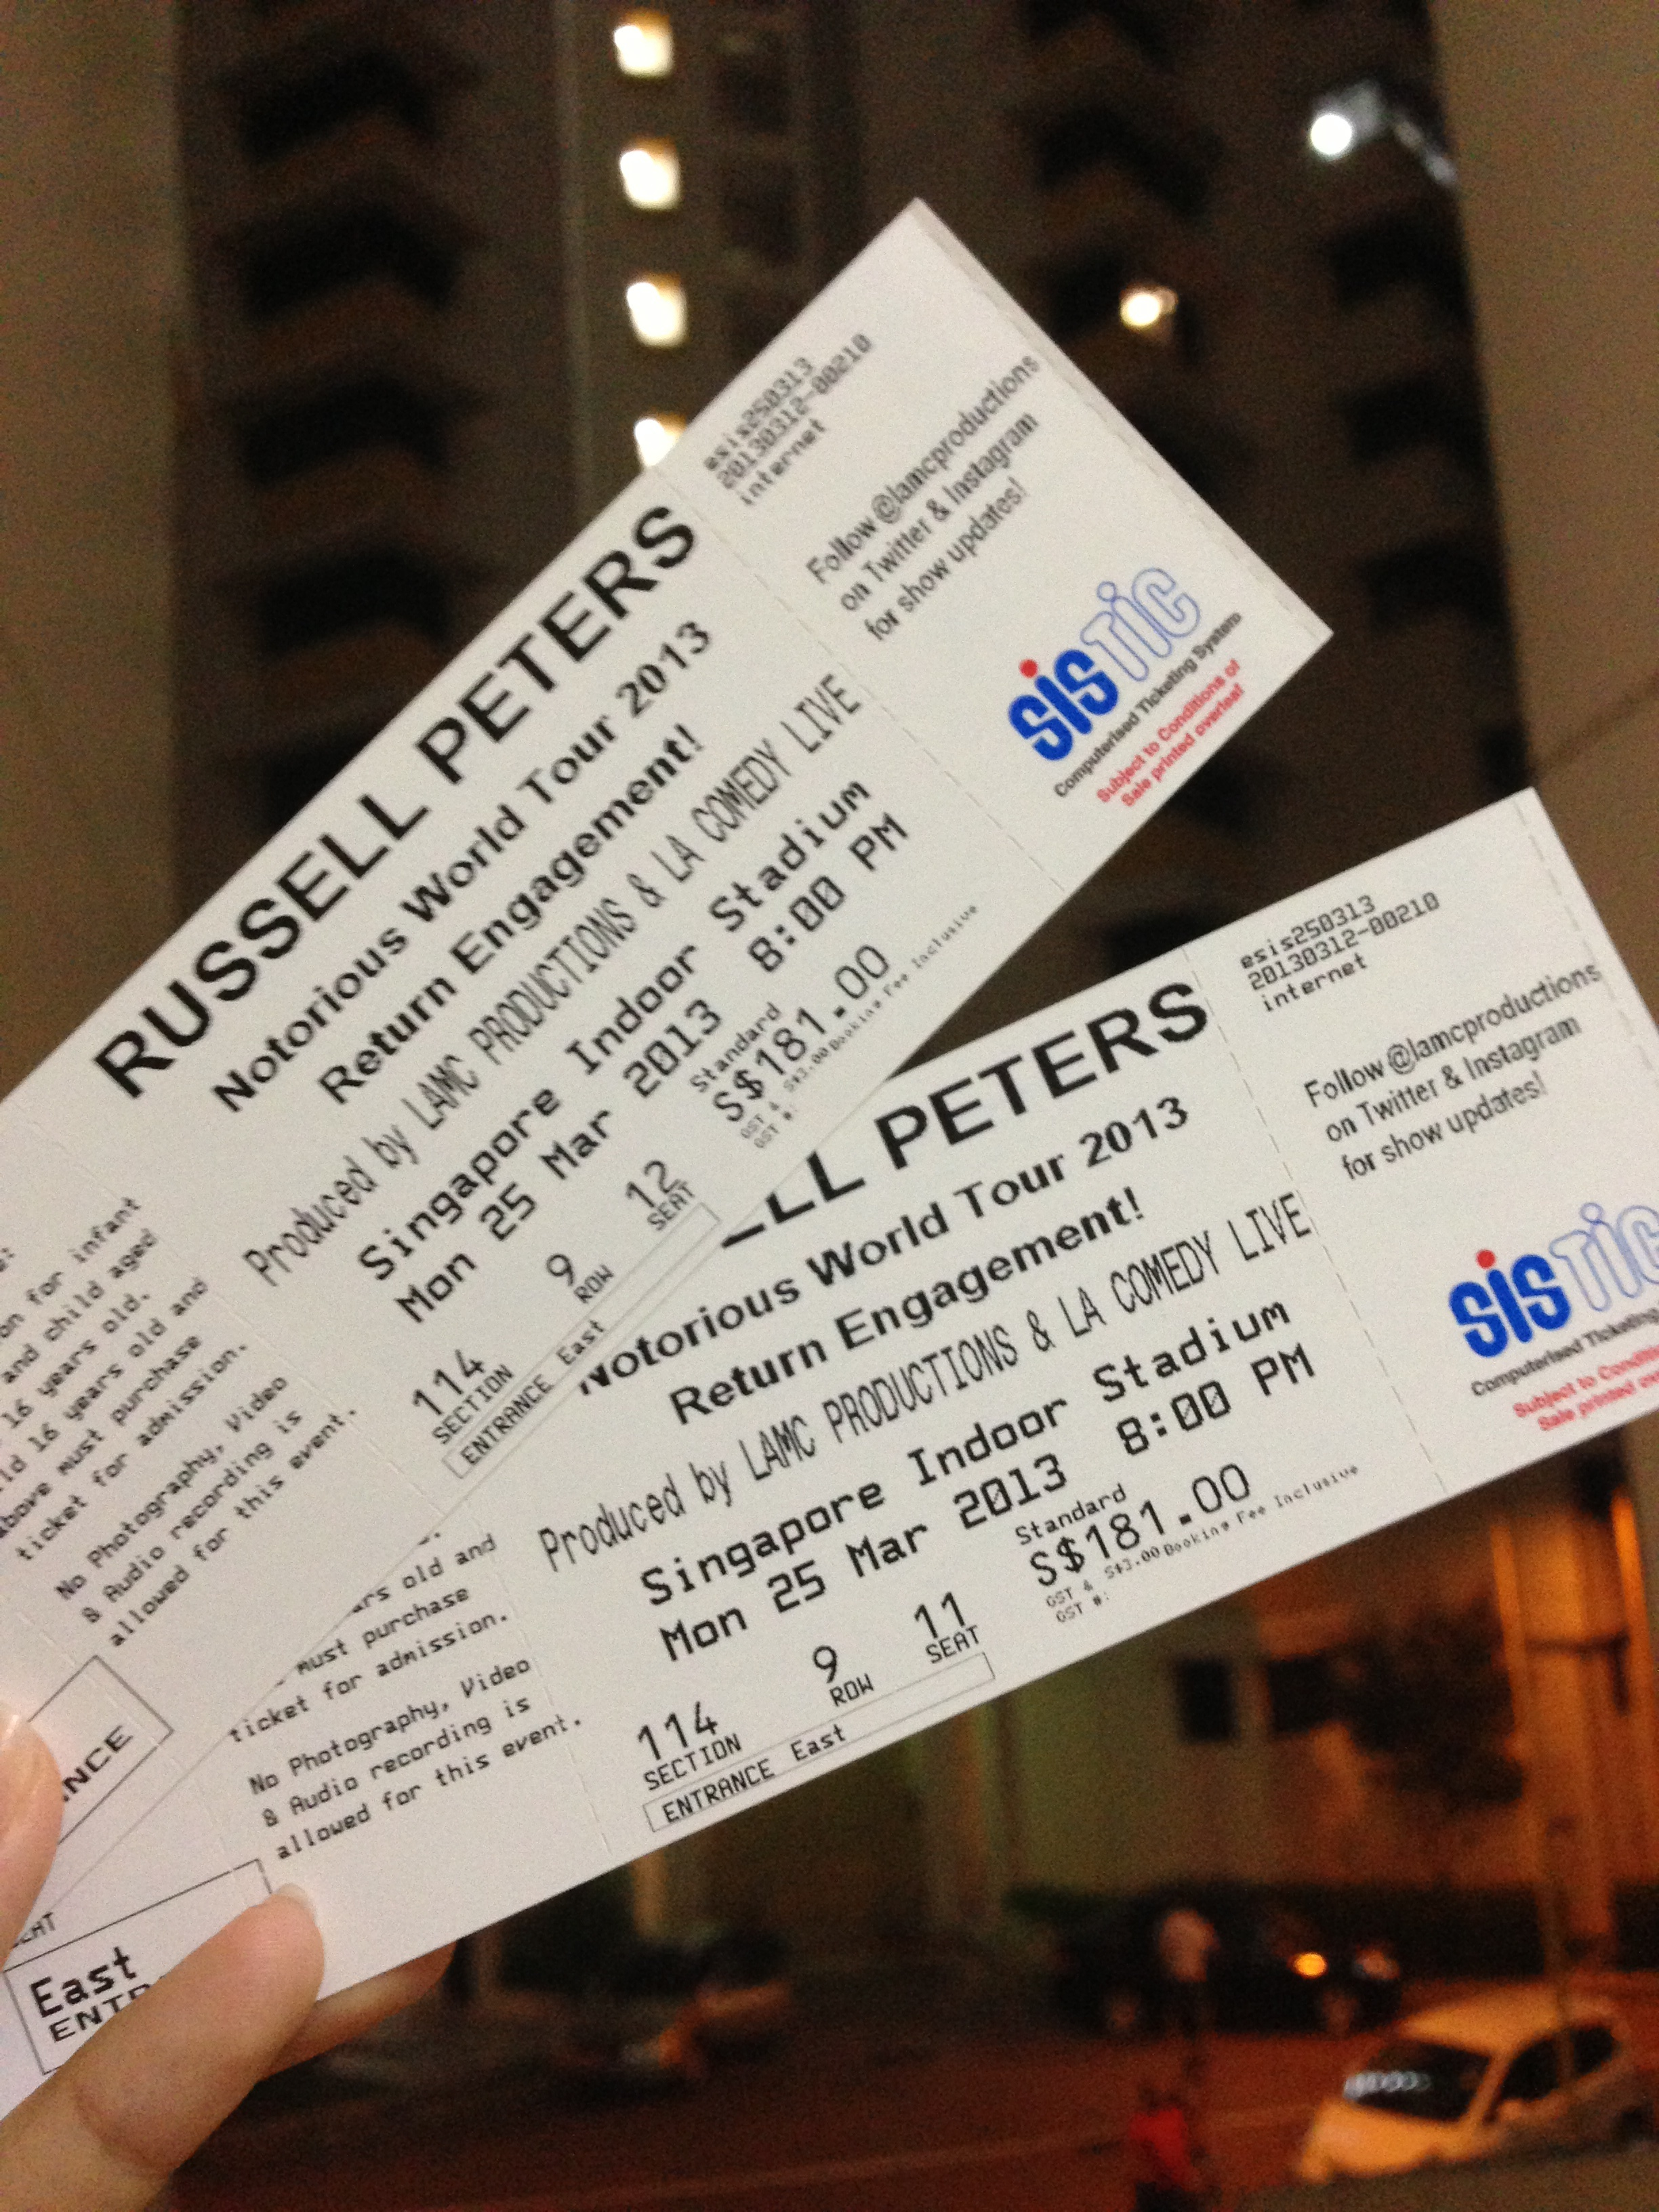 russell peters tickets.jpg